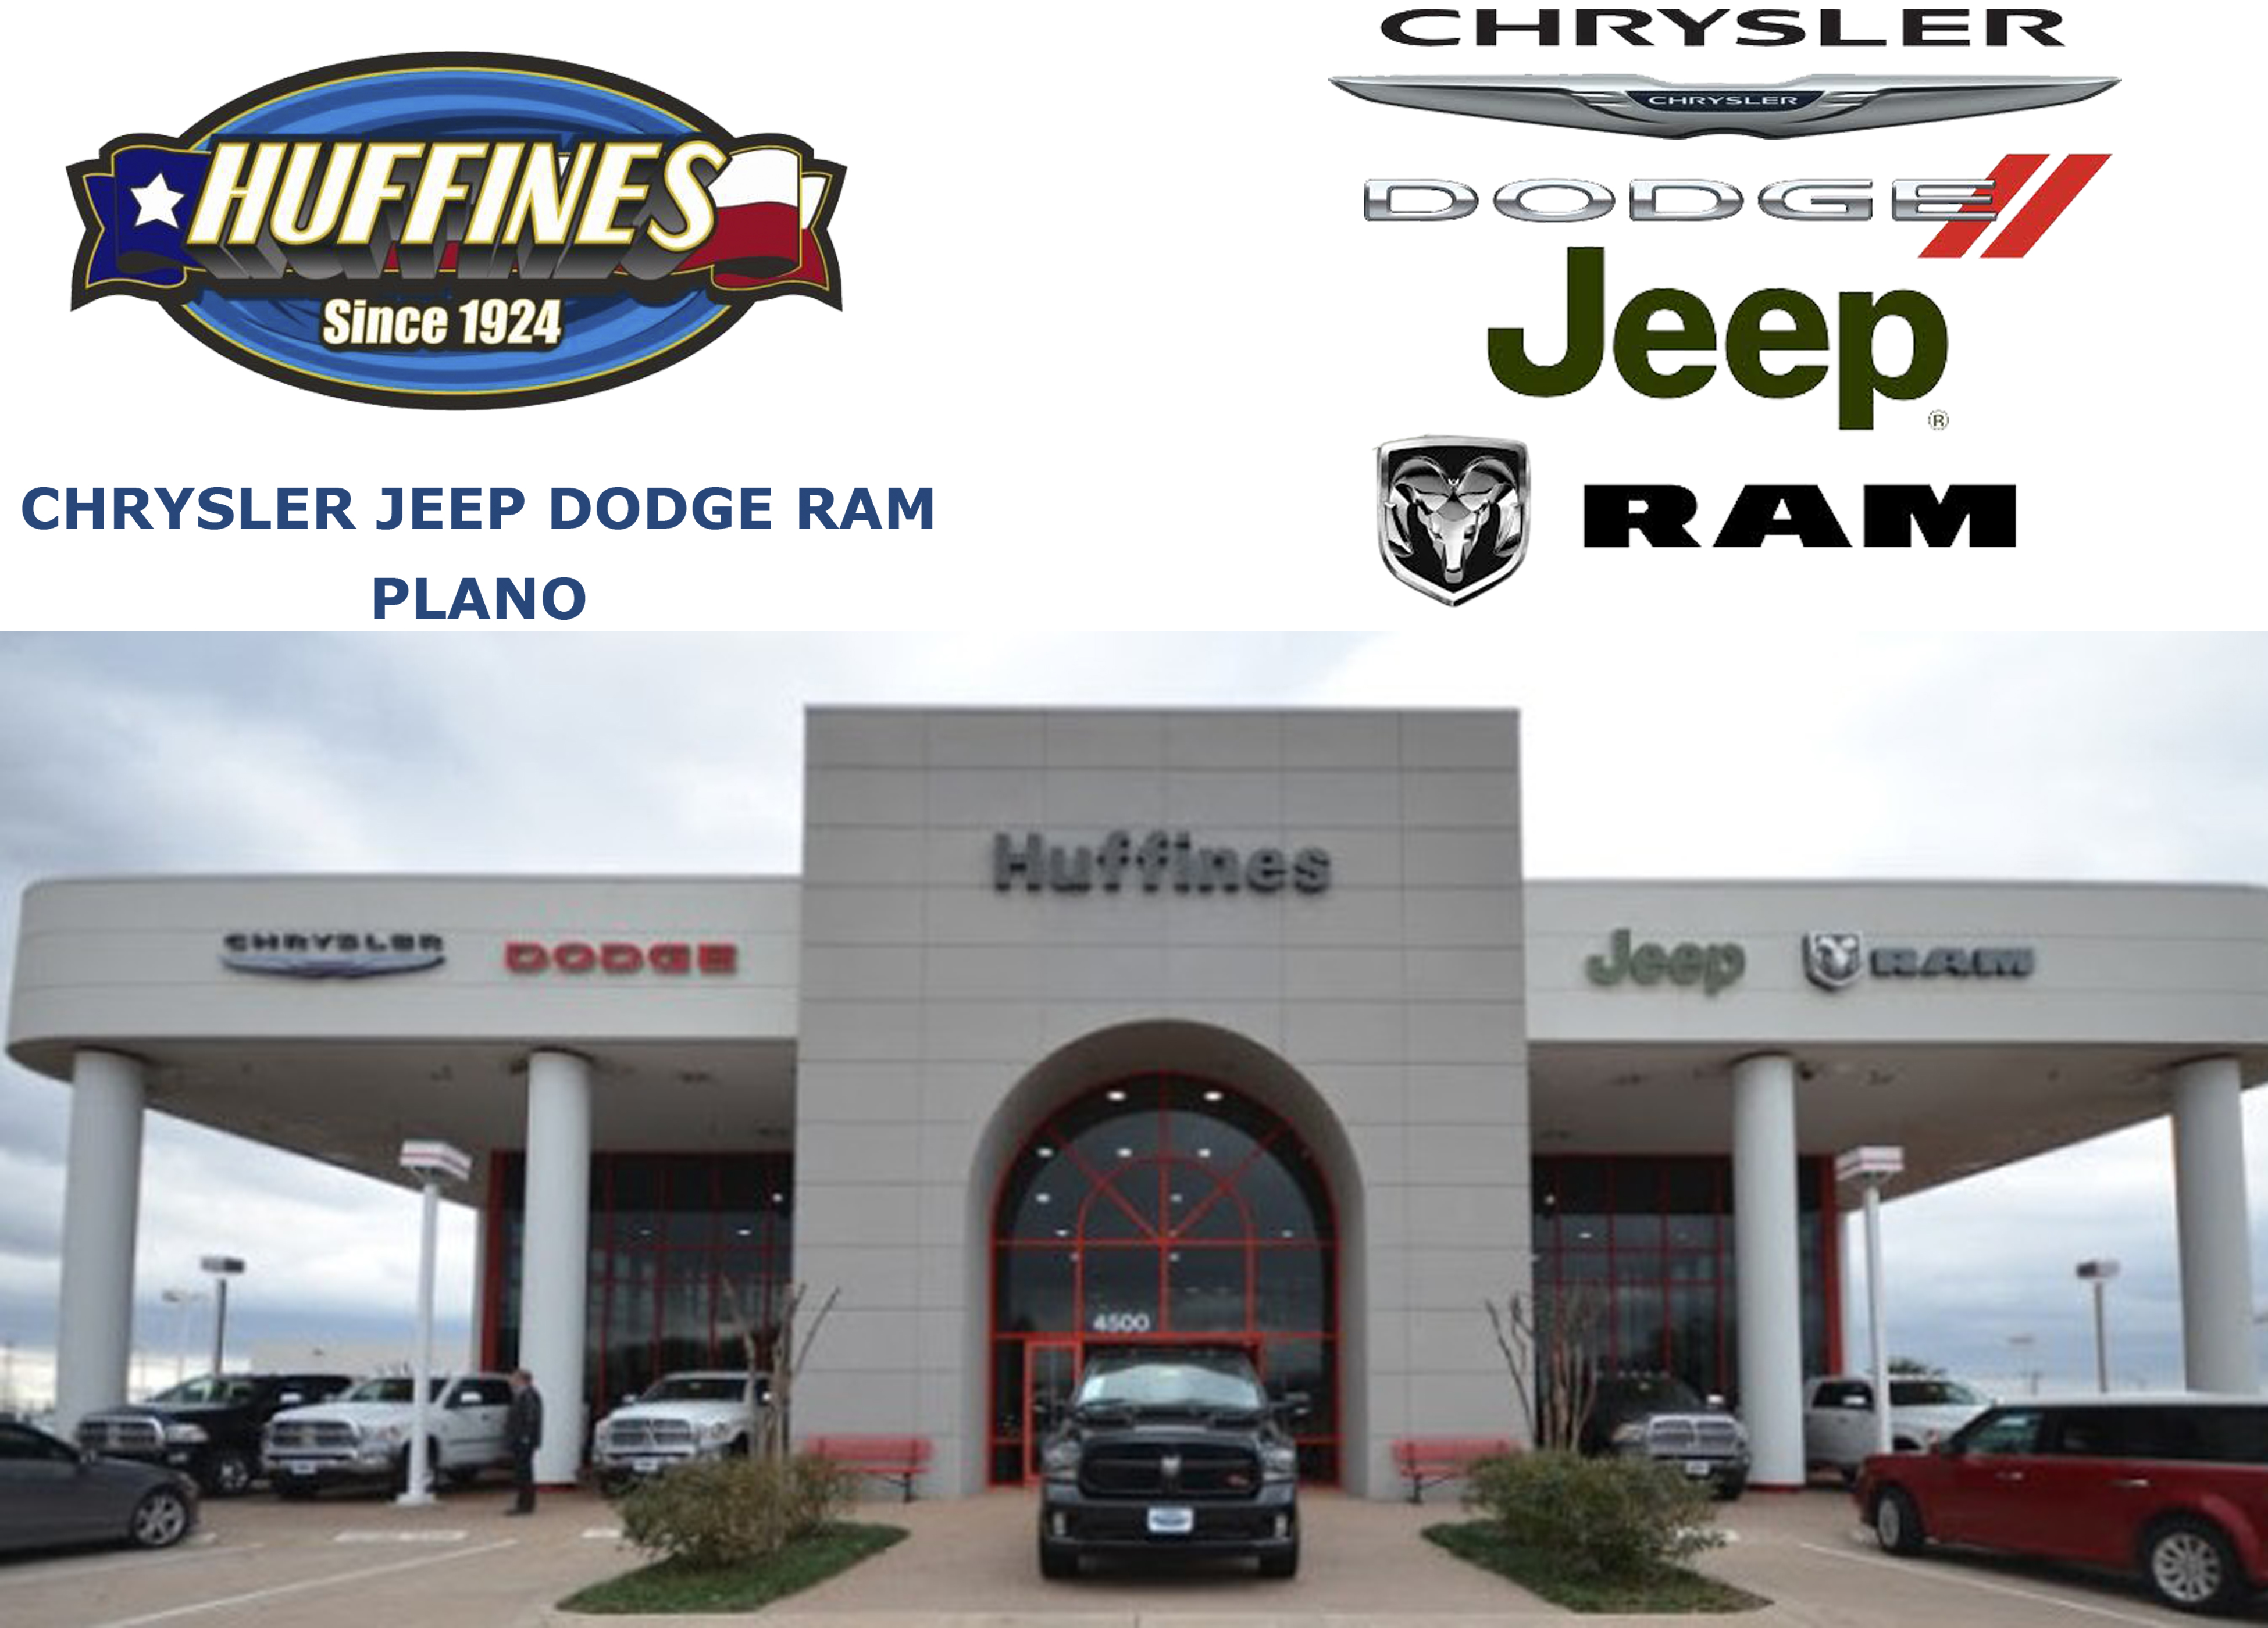 Huffines Chrysler Jeep Dodge Plano Review Testimonial Page 5